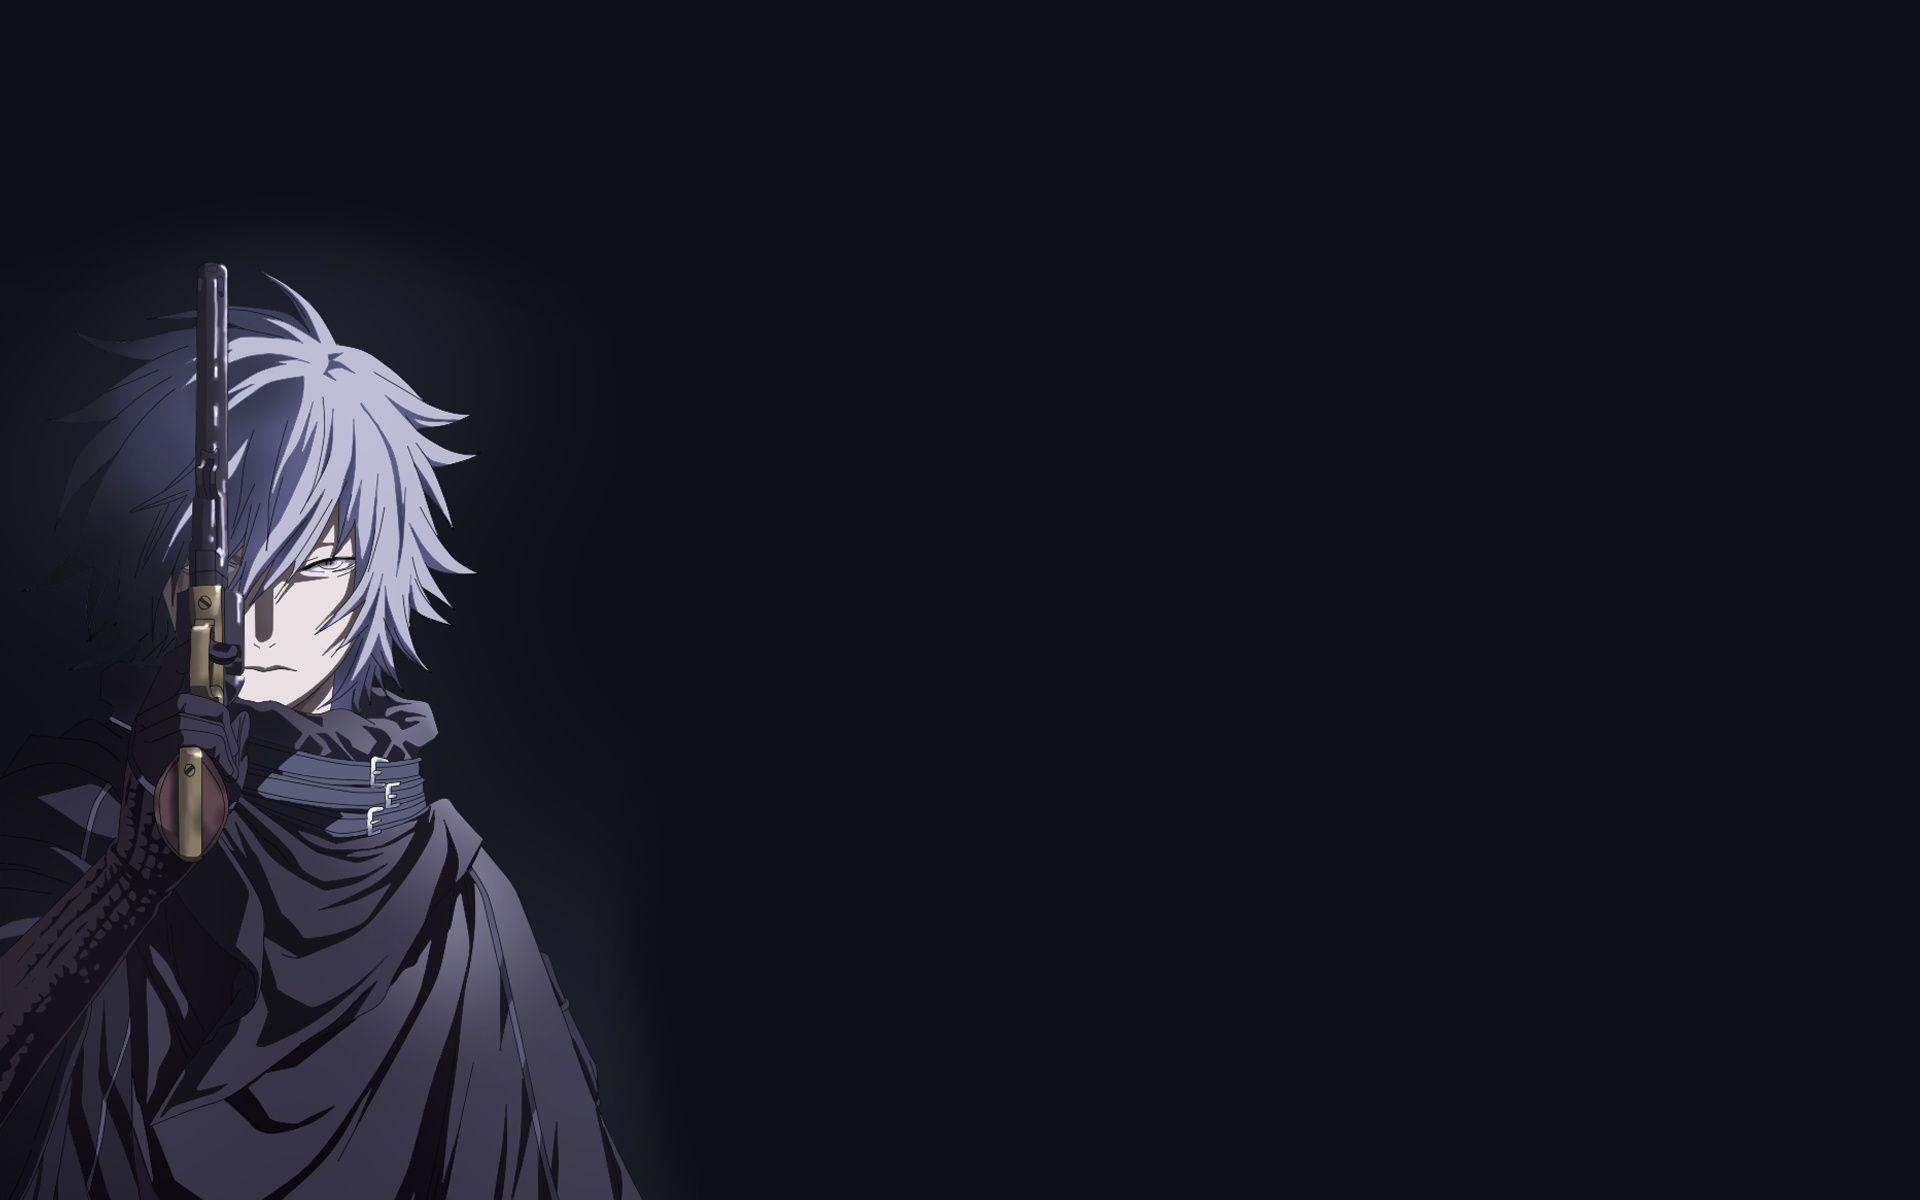 Dark Anime Aesthetic Wallpaper 1920x1080